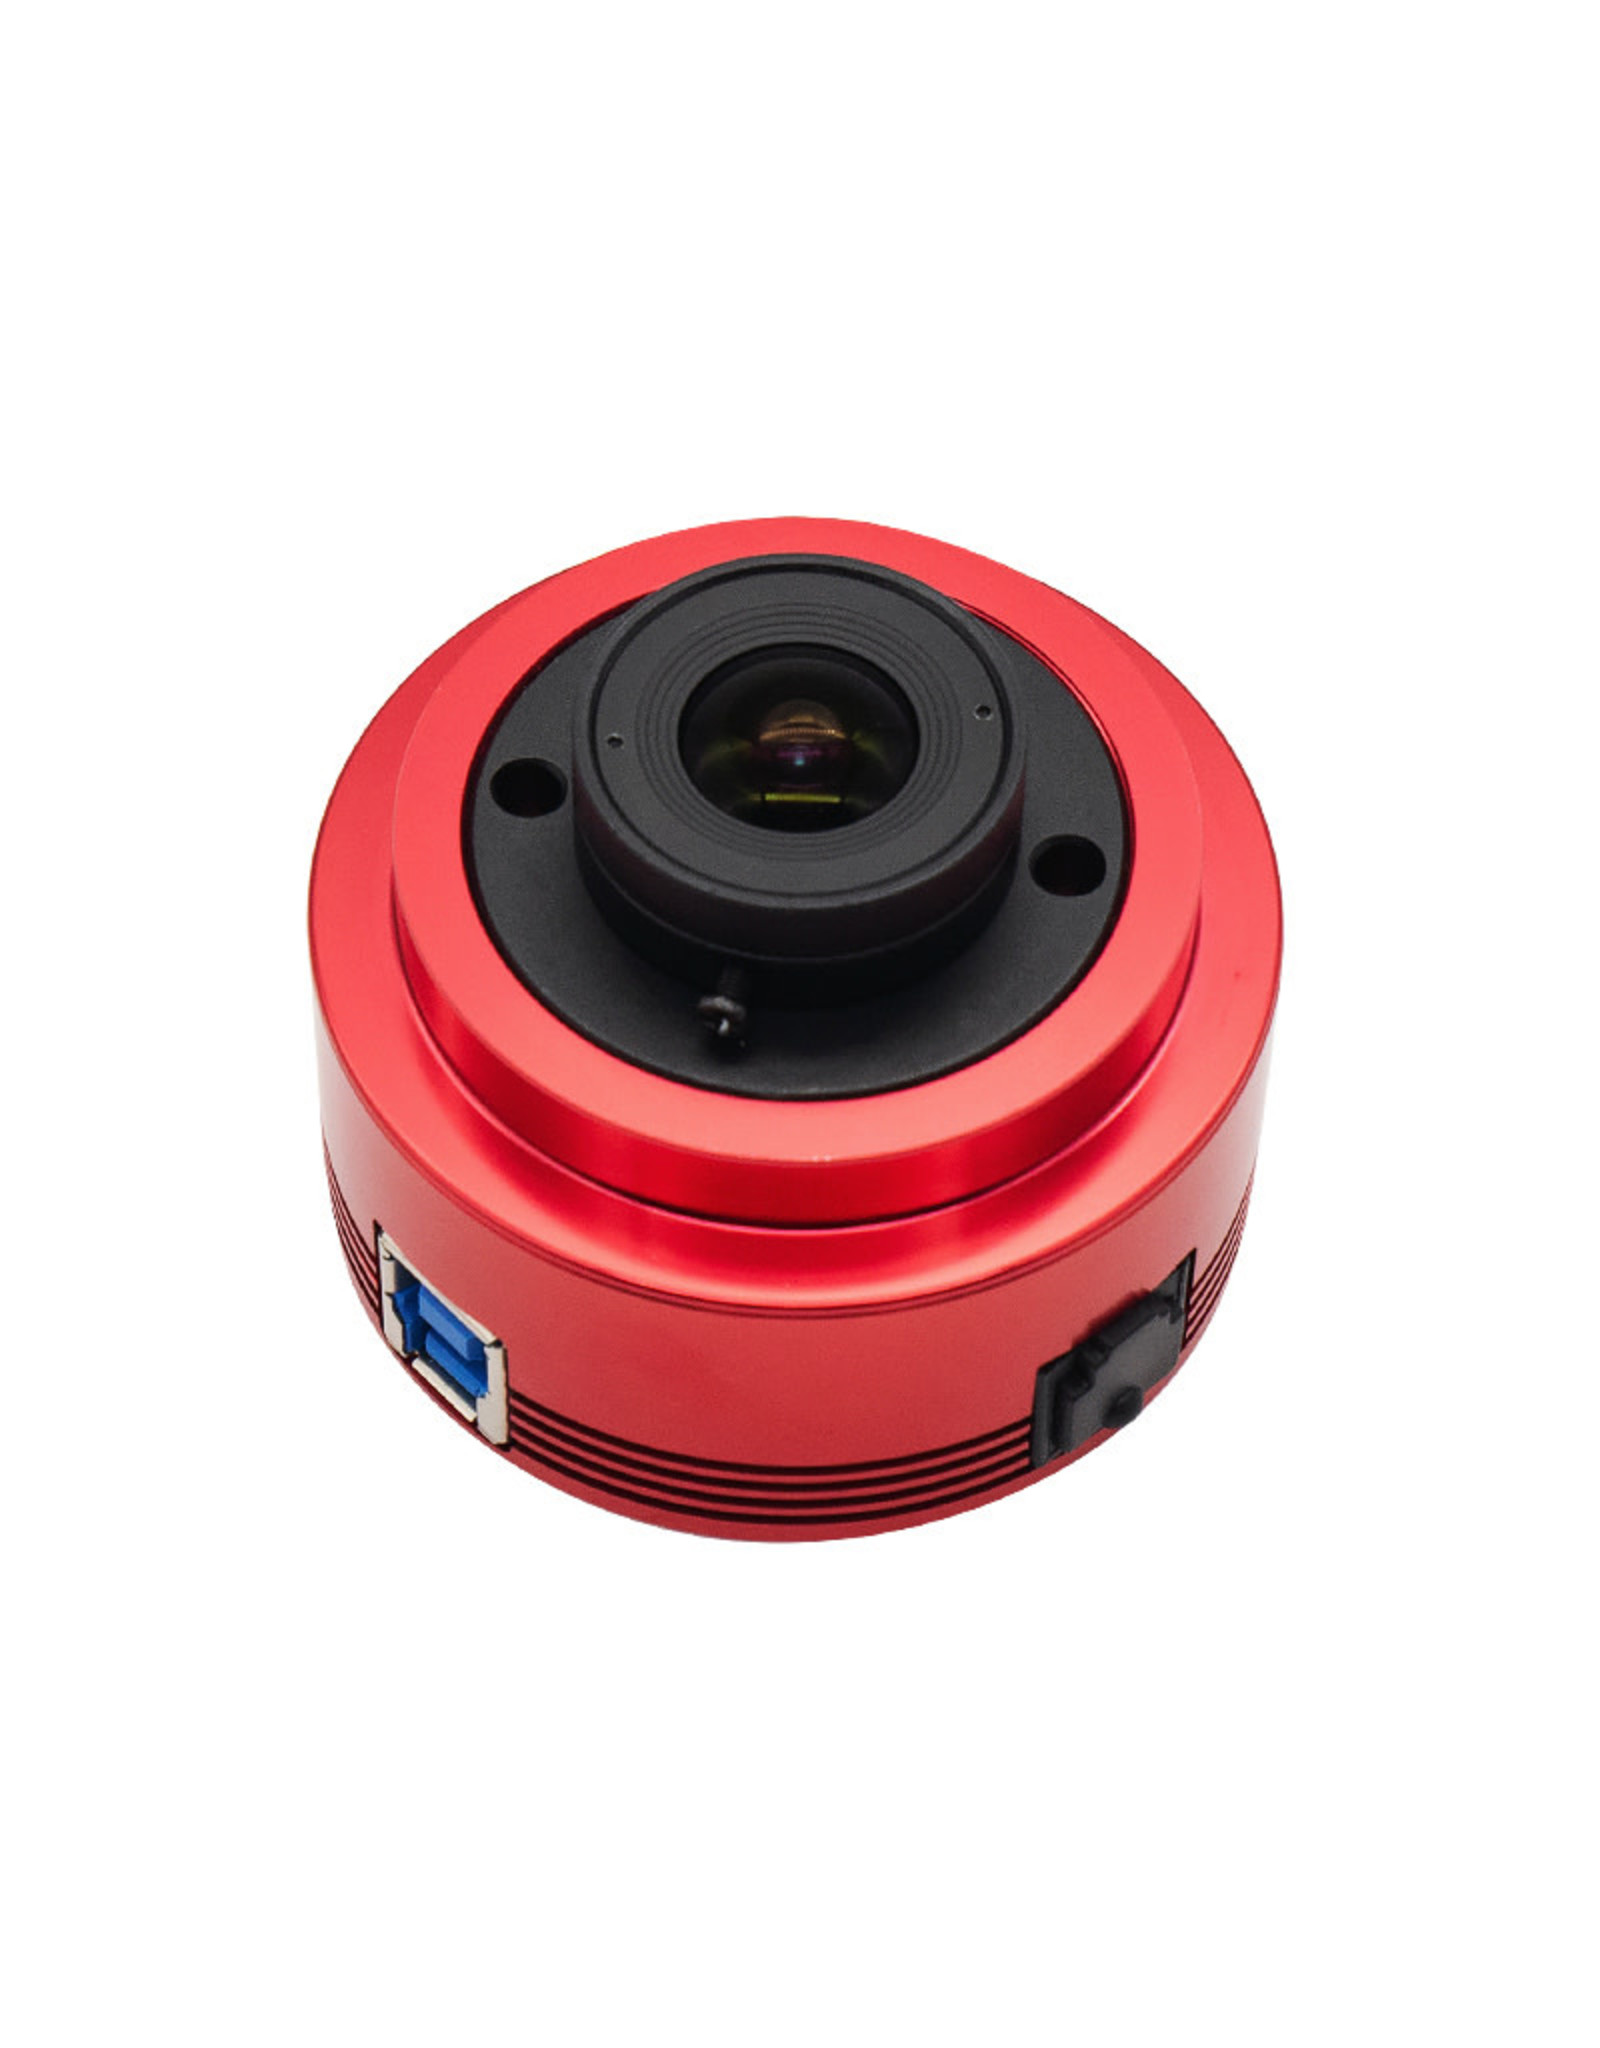 ZWO ZWO ASI462MC Color (2.9 microns) Astronomy Camera USB 3.0